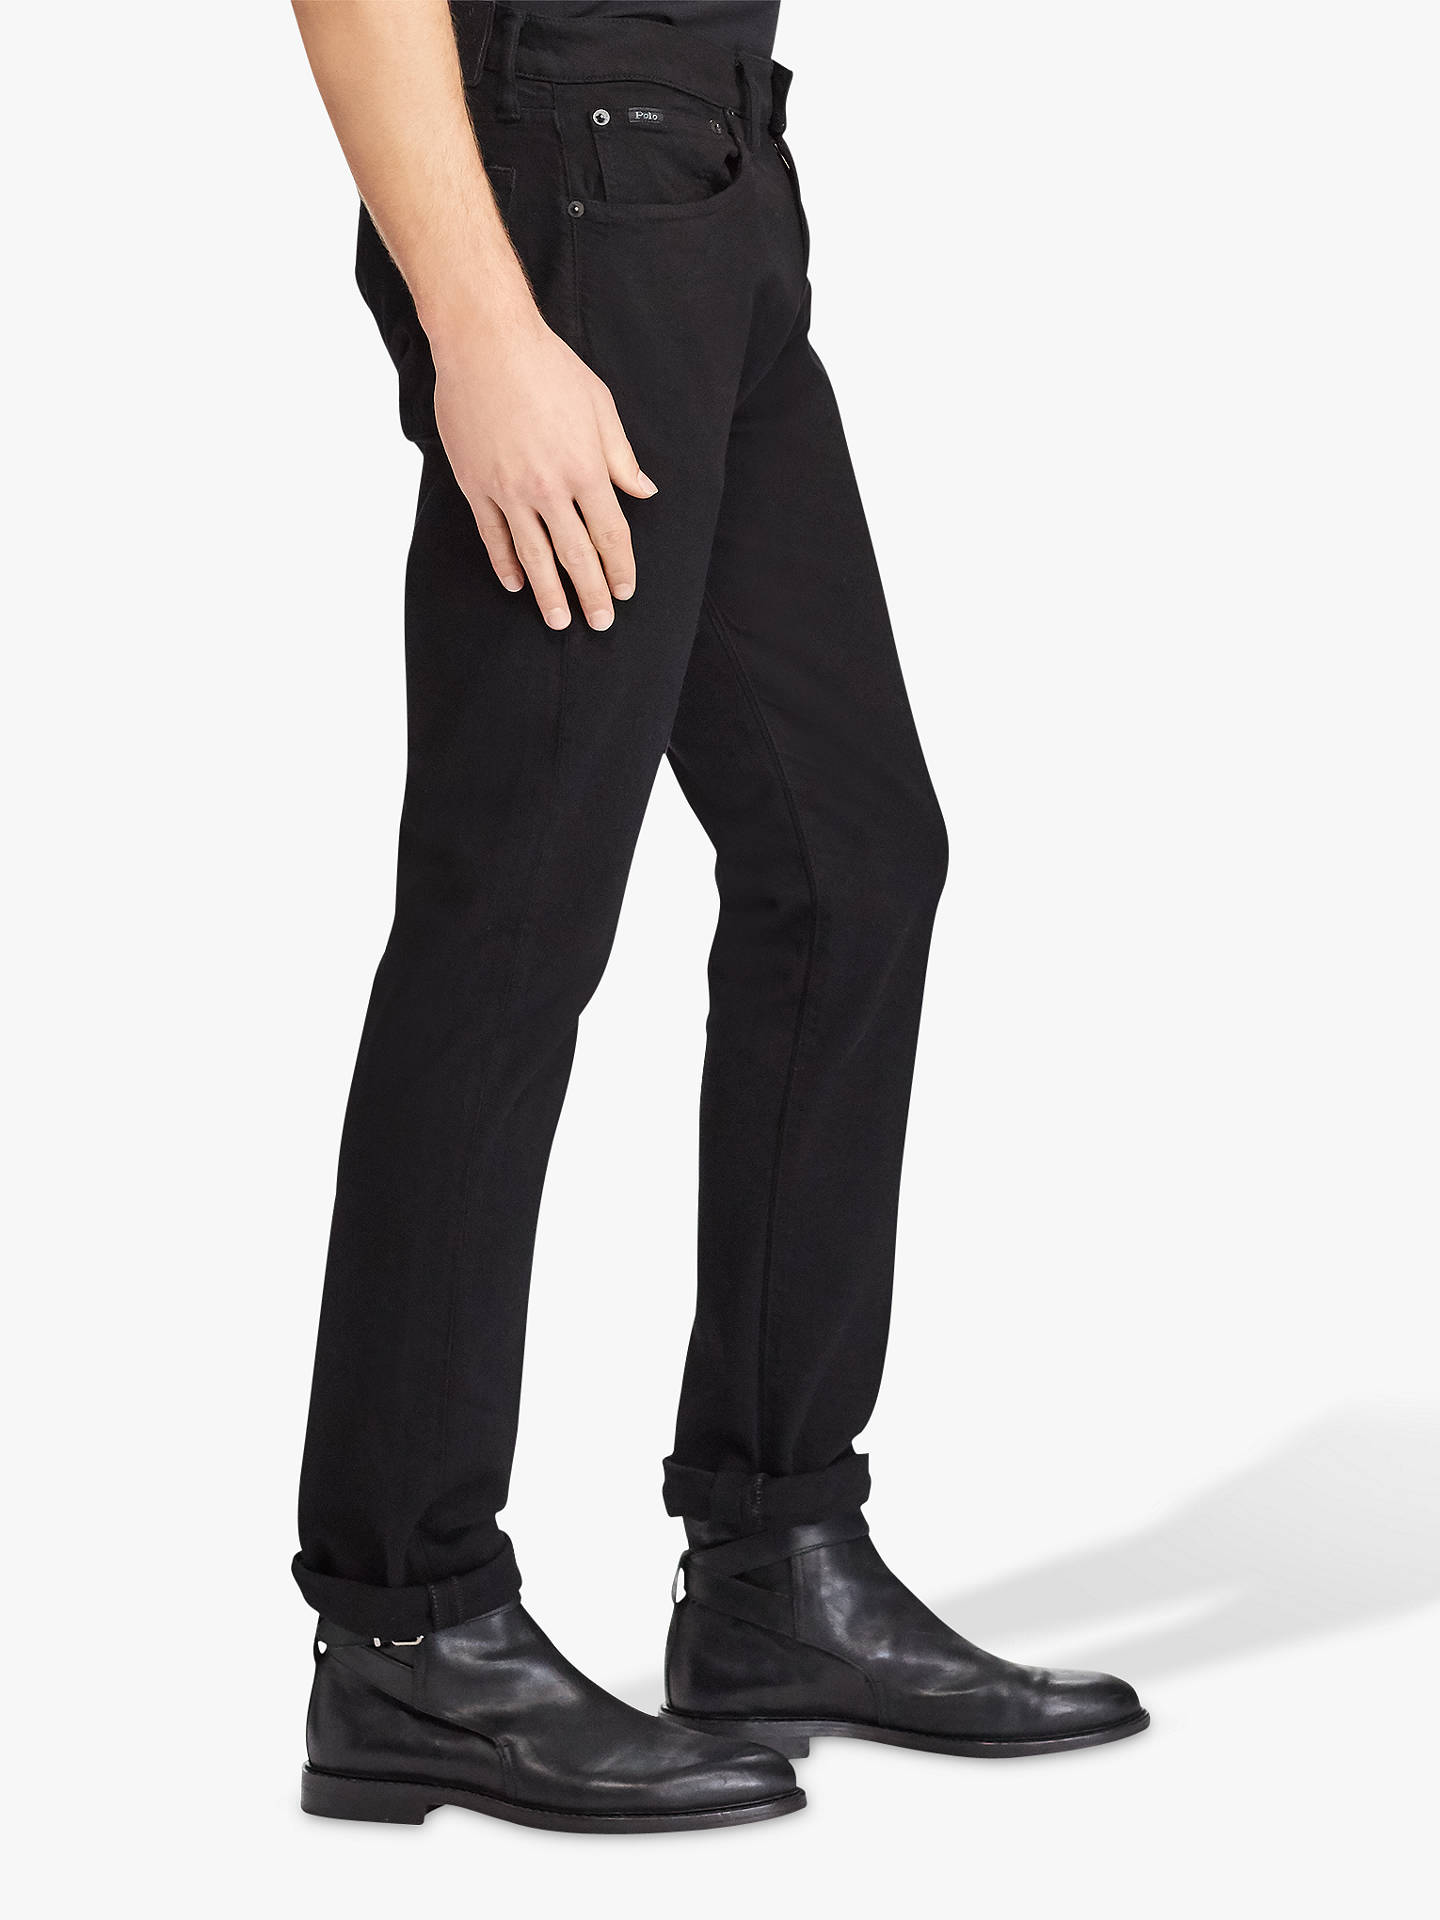 4da494f90c Polo Ralph Lauren Sullivan Slim Stretch Jeans, Black